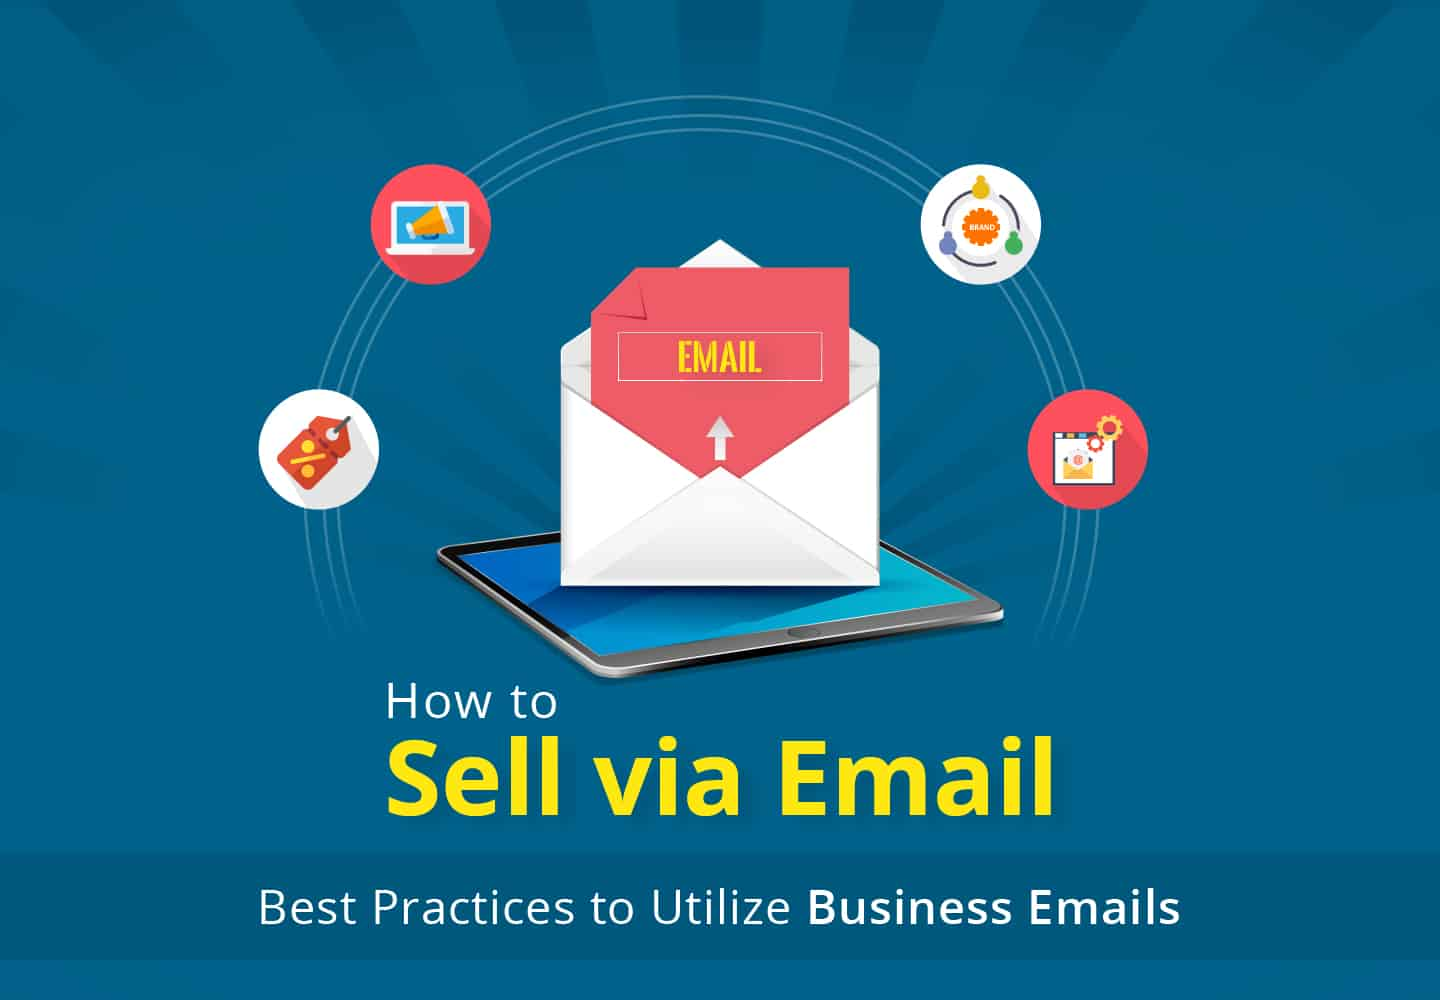 Sell via email - best practices